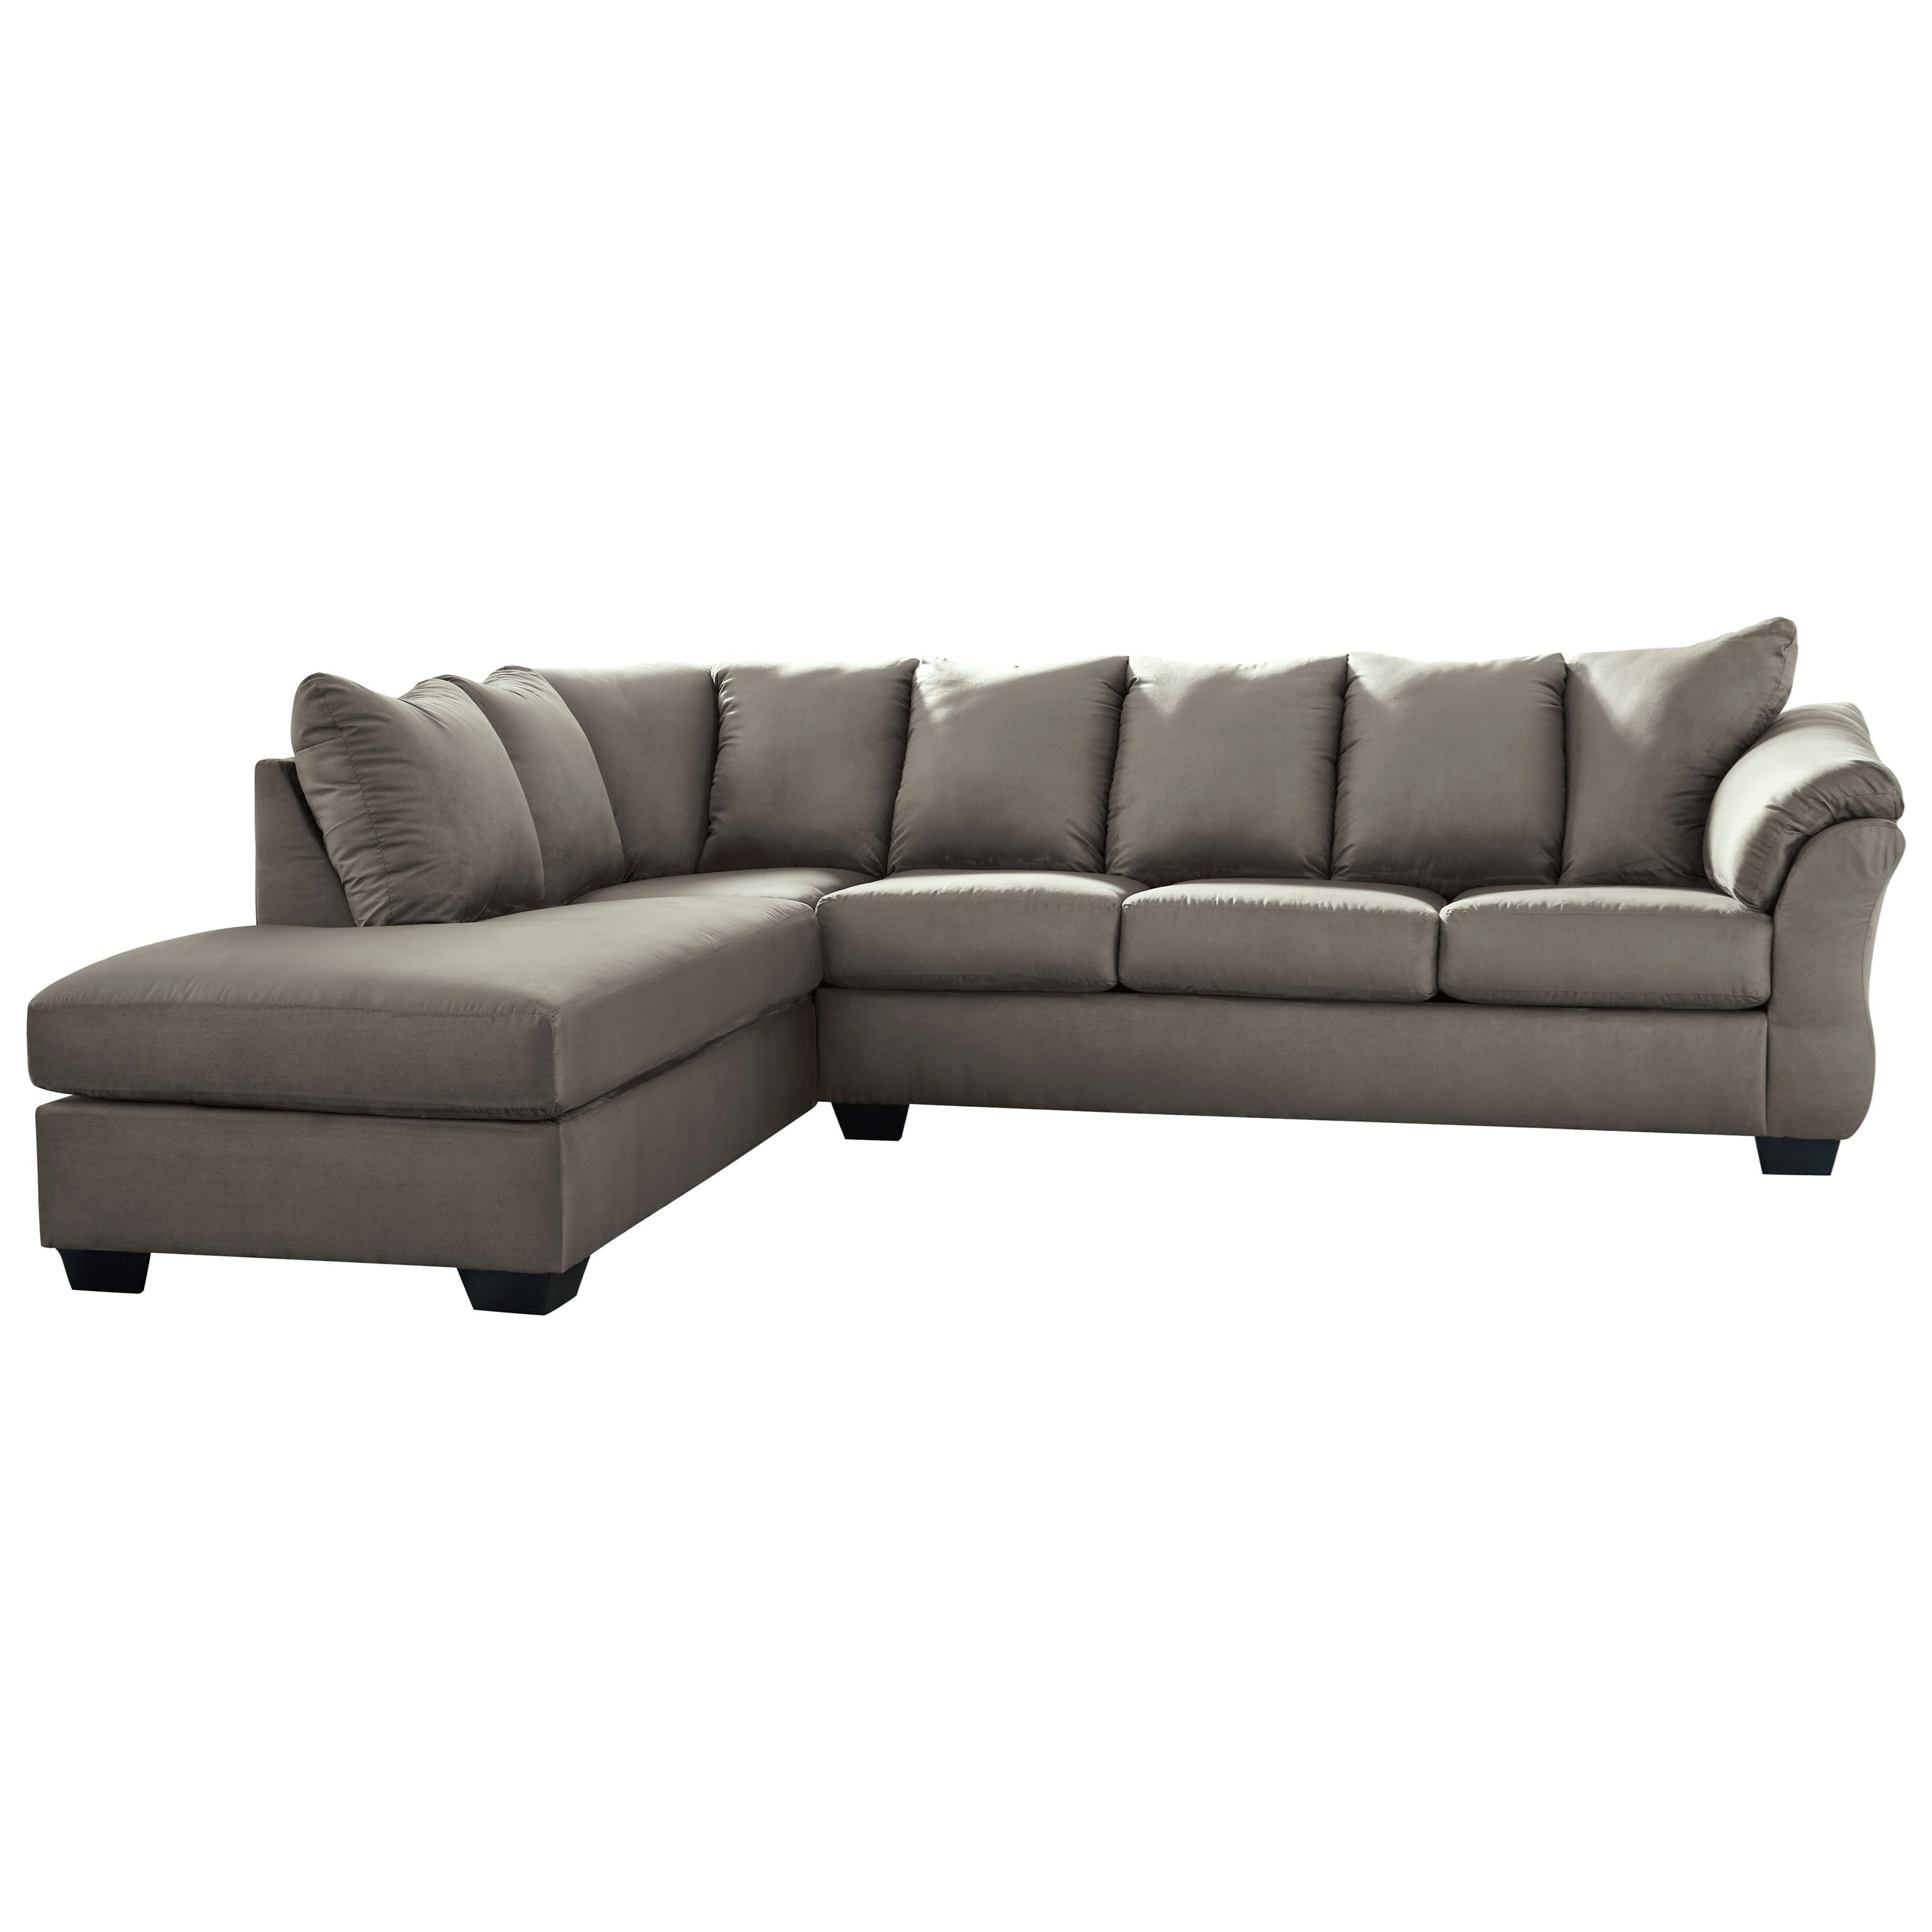 Darcy - Cobblestone 2-Piece Sectional Sofa with Chaise by Signature Design by Ashley at Northeast Factory Direct